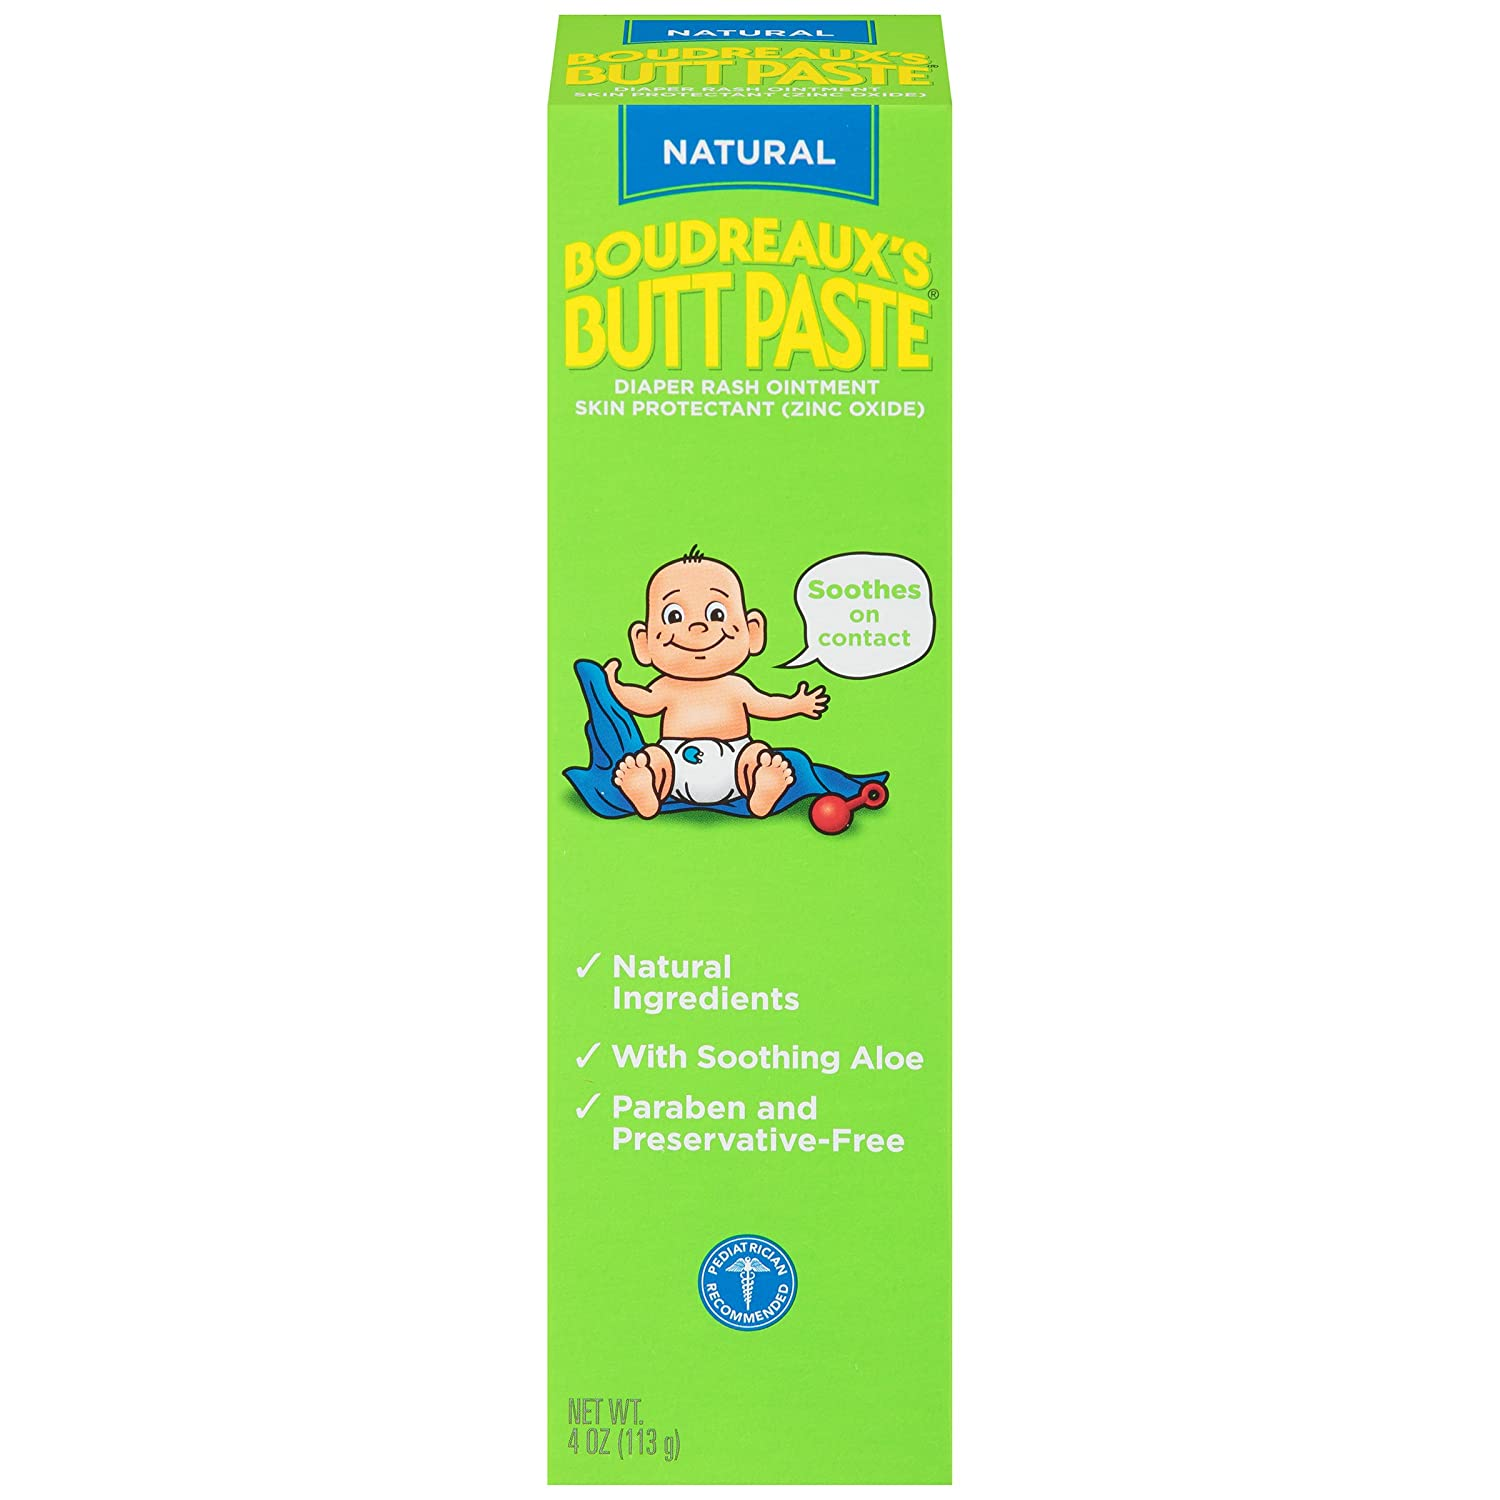 Boudreaux's Butt Paste Diaper Rash Ointment, Natural, 4 Ounce